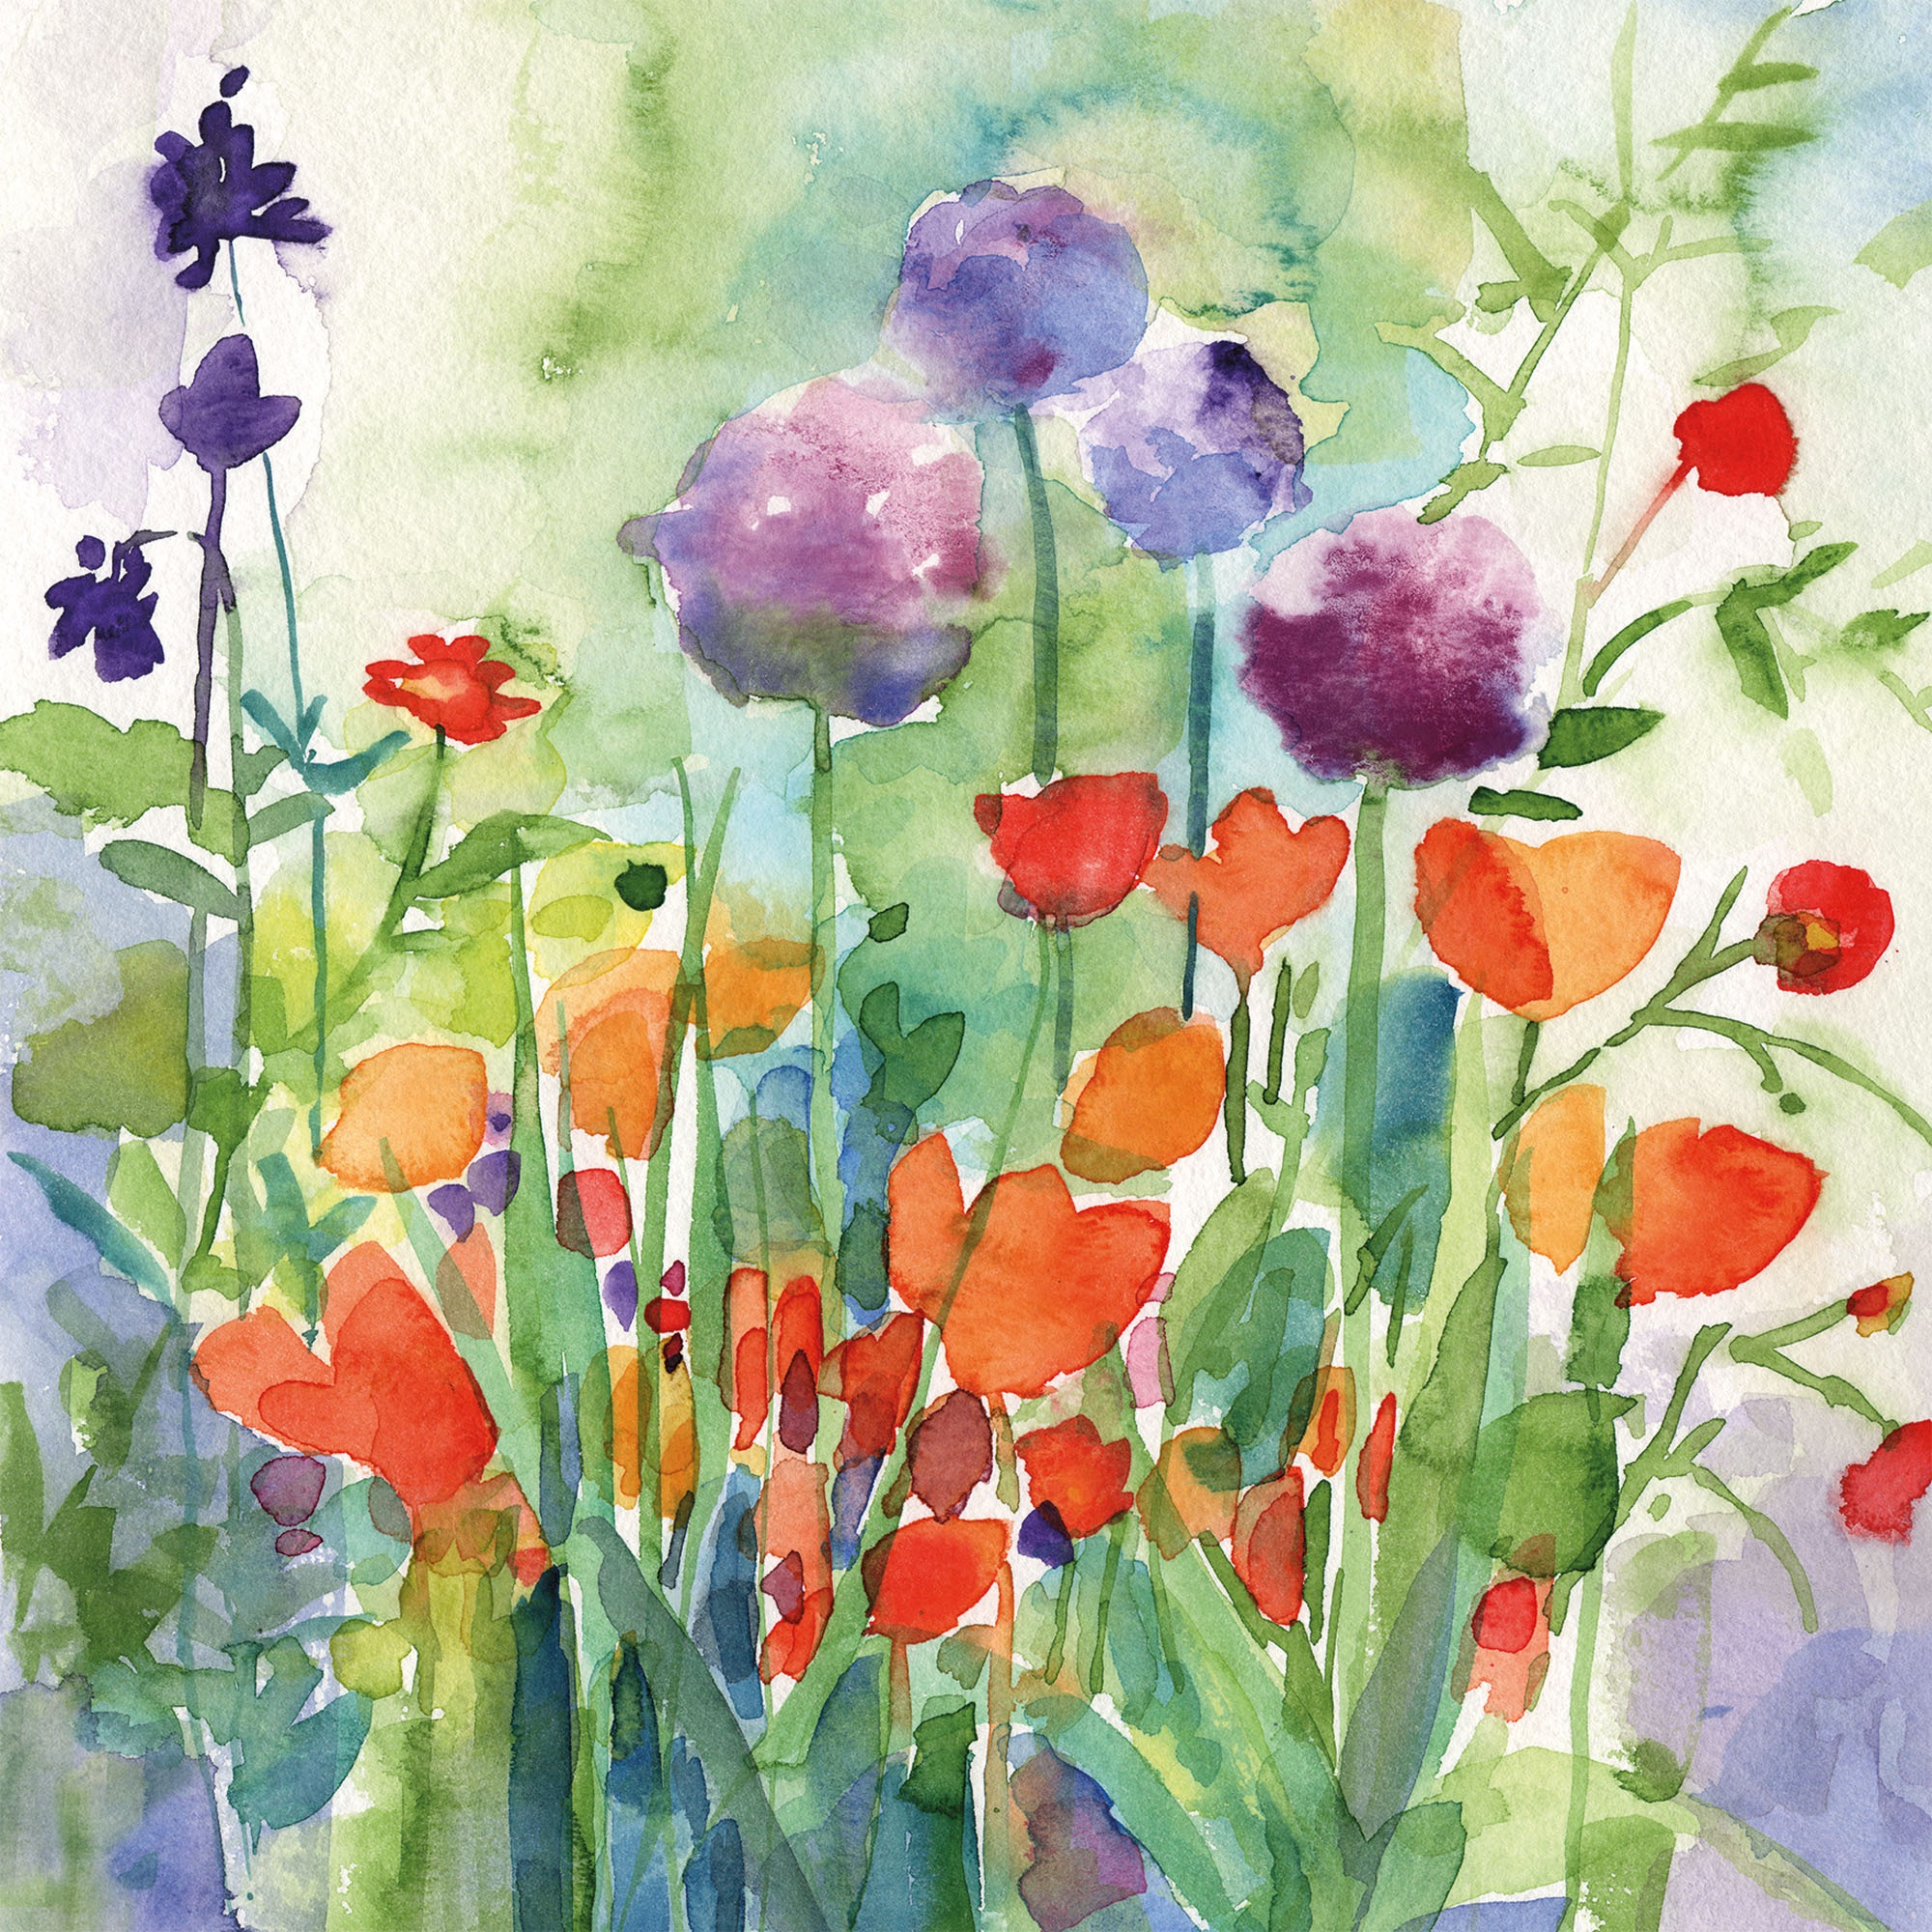 Poppies and alliums